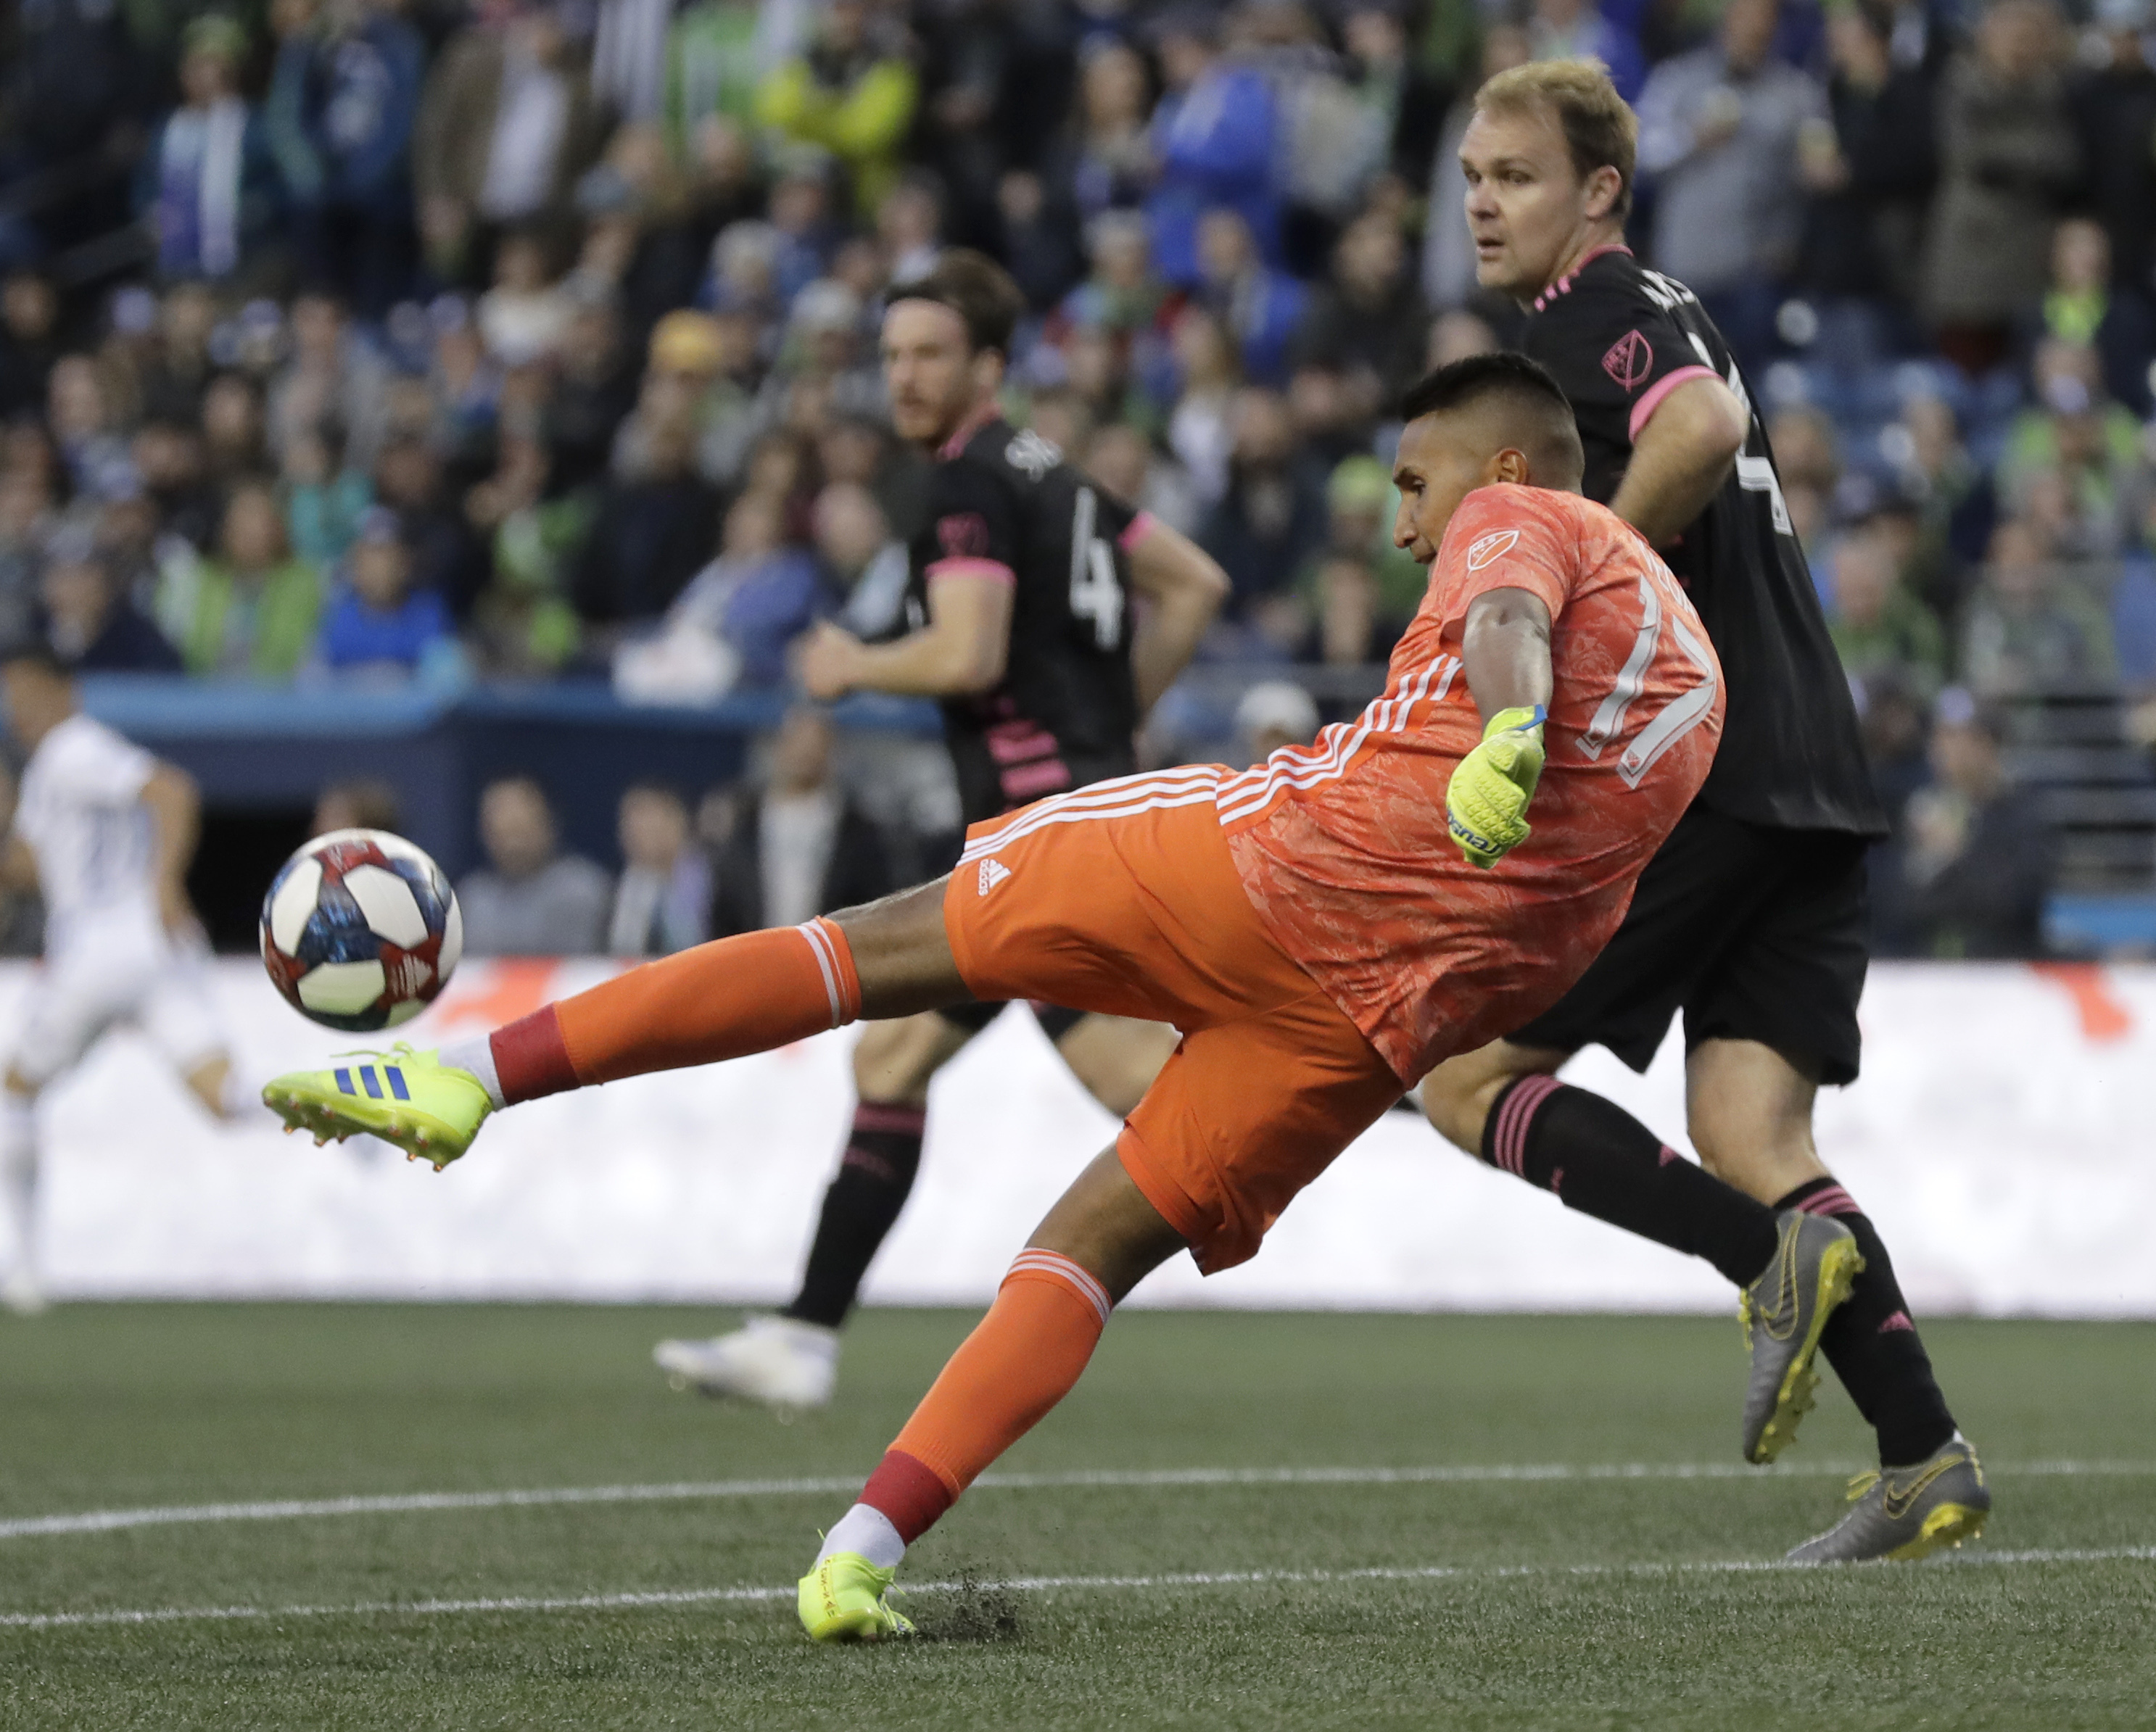 Sounders rally from two goals down, tie Earthquakes 2-2